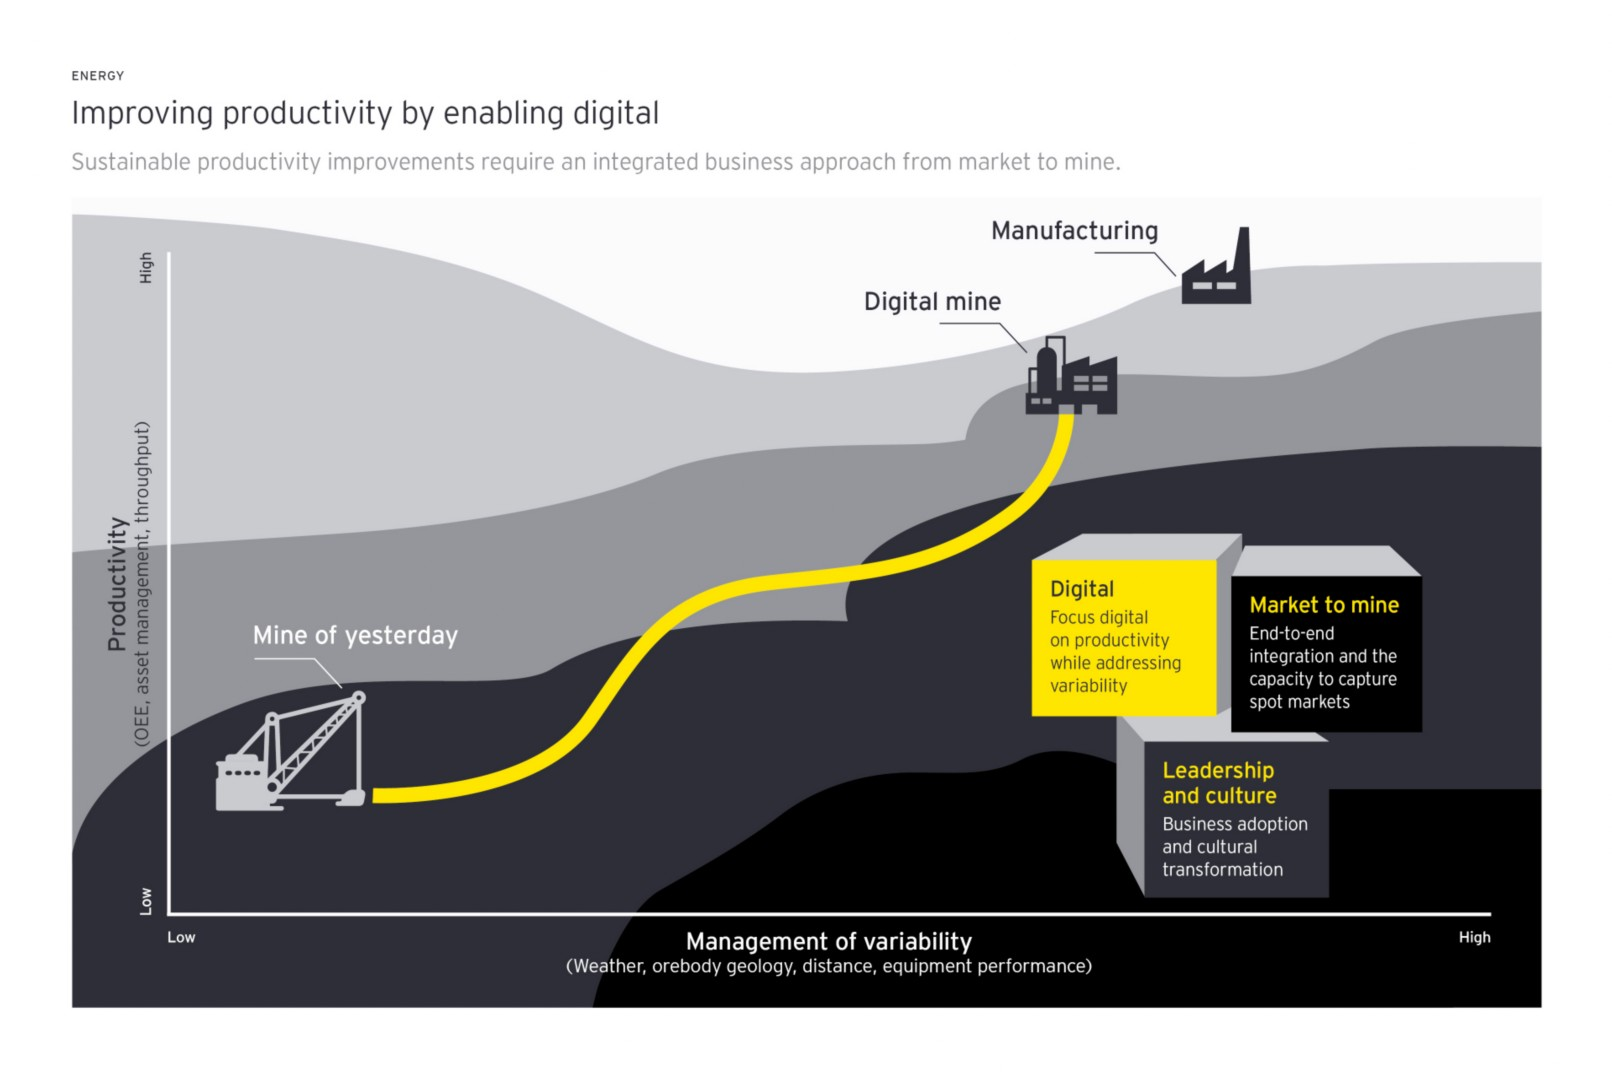 enabling digital improve mining and metals productivity